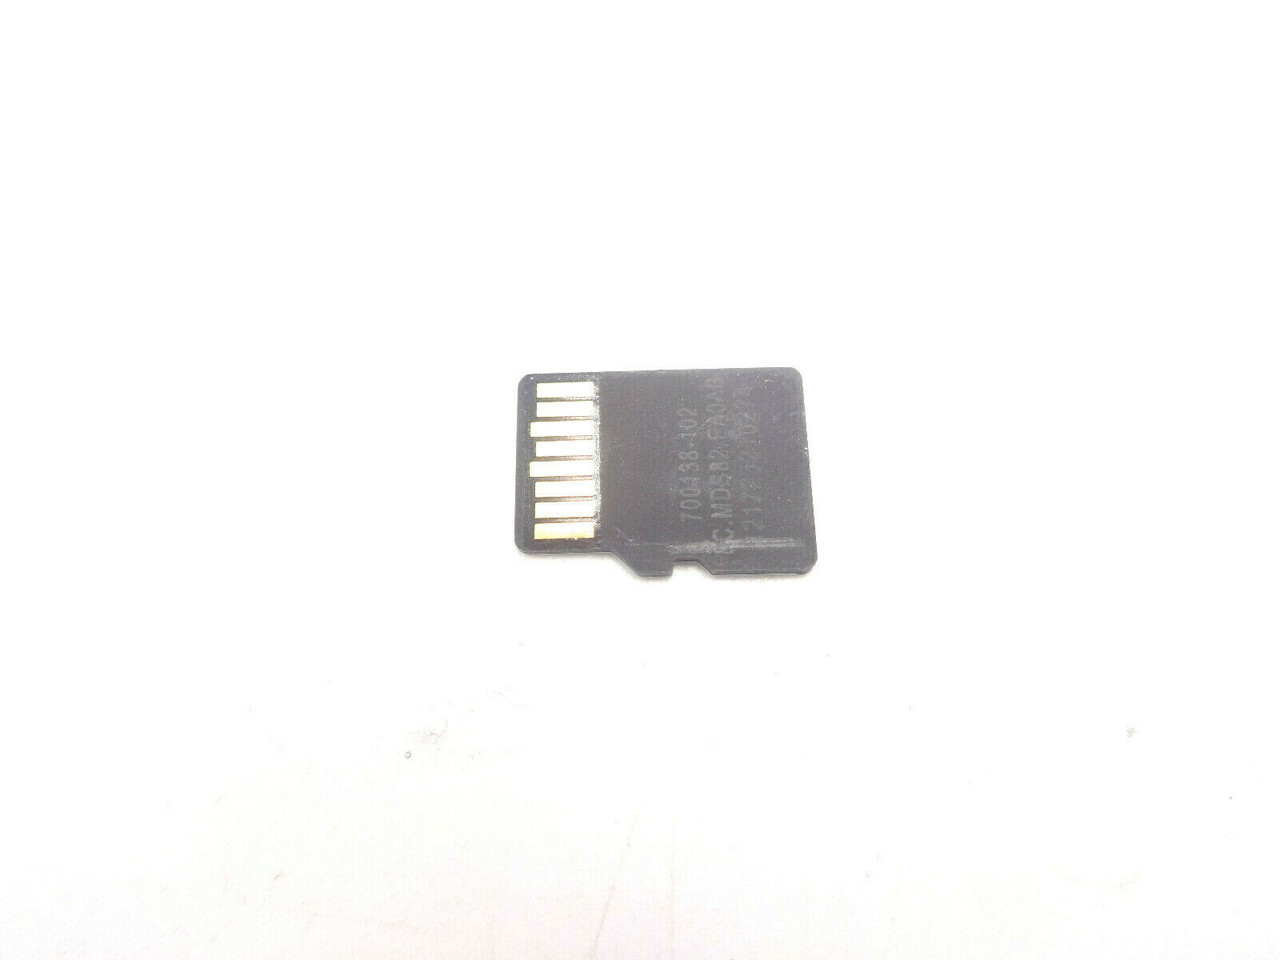 700139-B21 HP 32GB Micro SDHC Flash Media Card 700138-001 704502-001